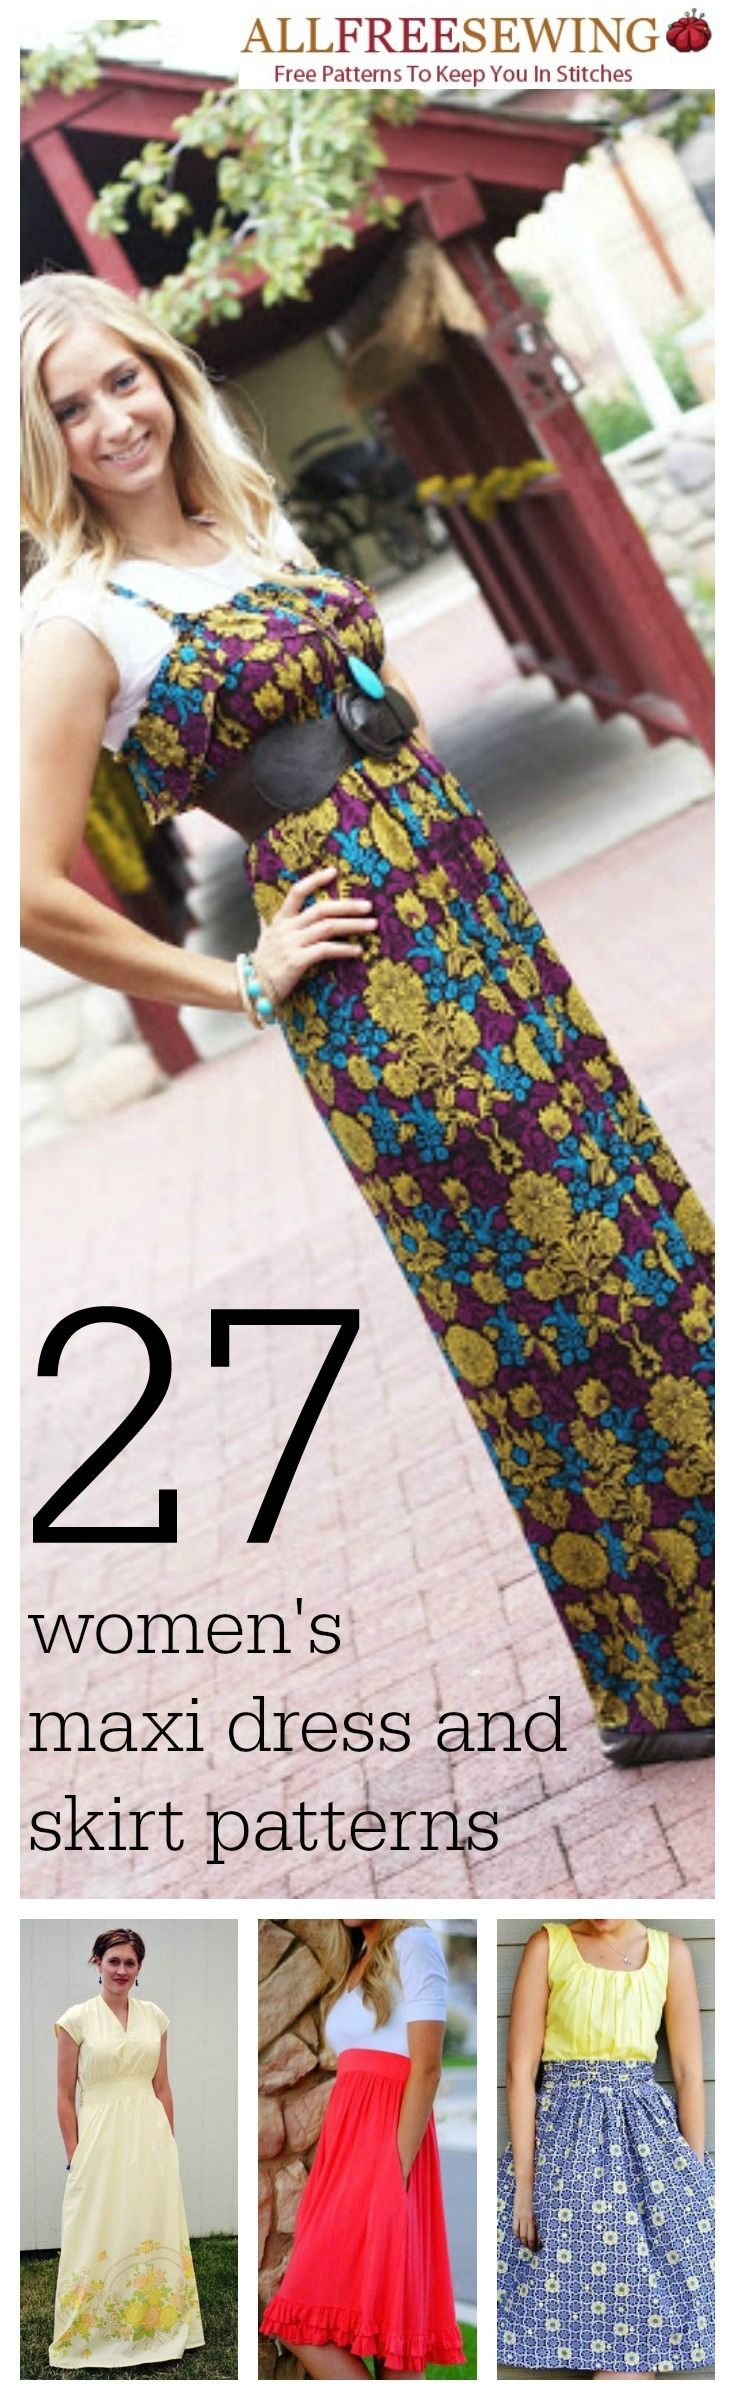 27 Long Dresses for Summer, Women's Maxi Dresses, and Skirts